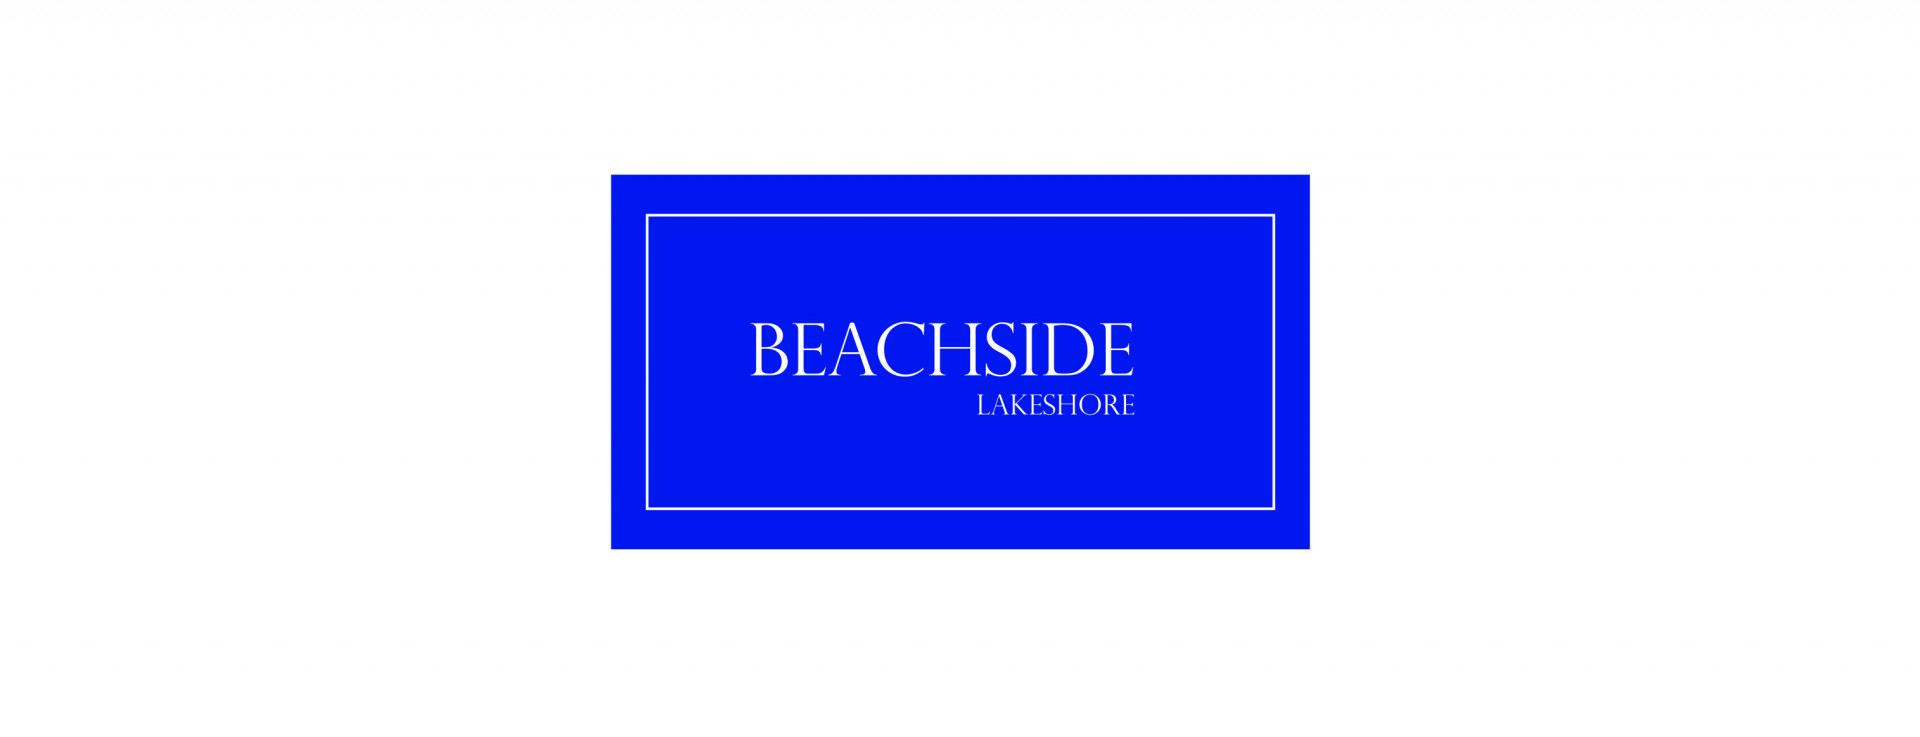 Beachside, Lakeshore